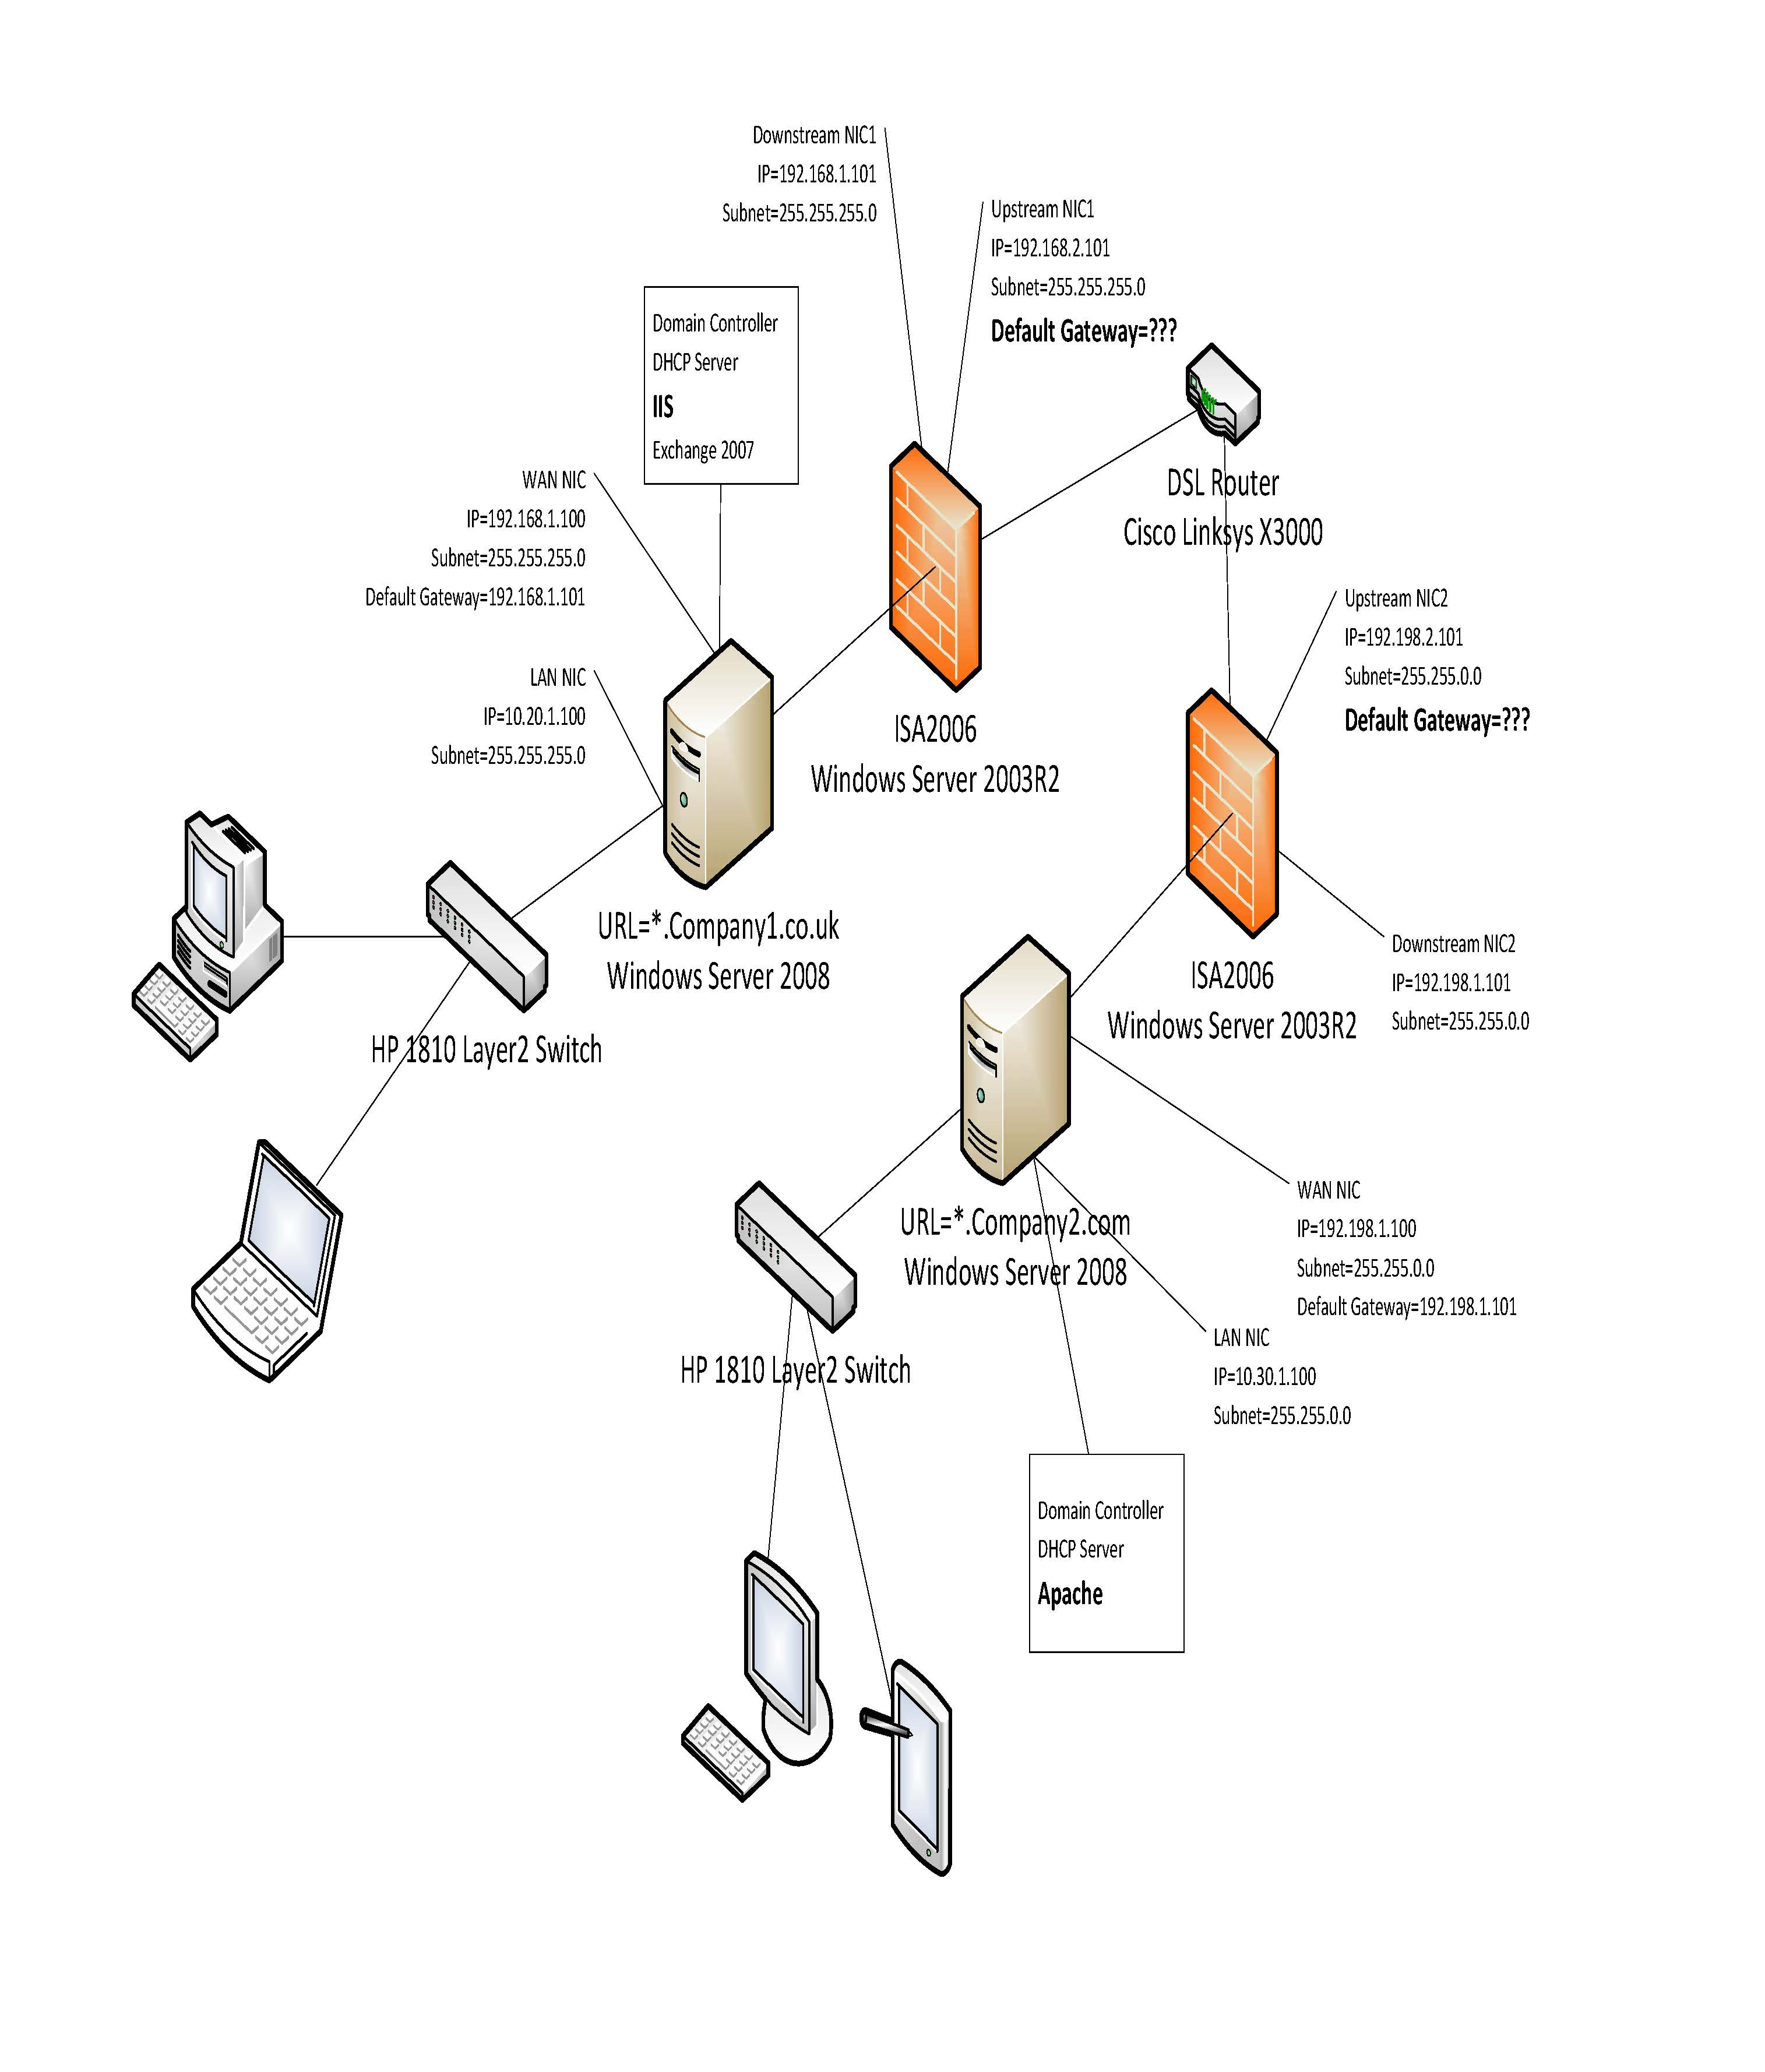 [SOLUTION] 2 domains 2 networks 1 gateway